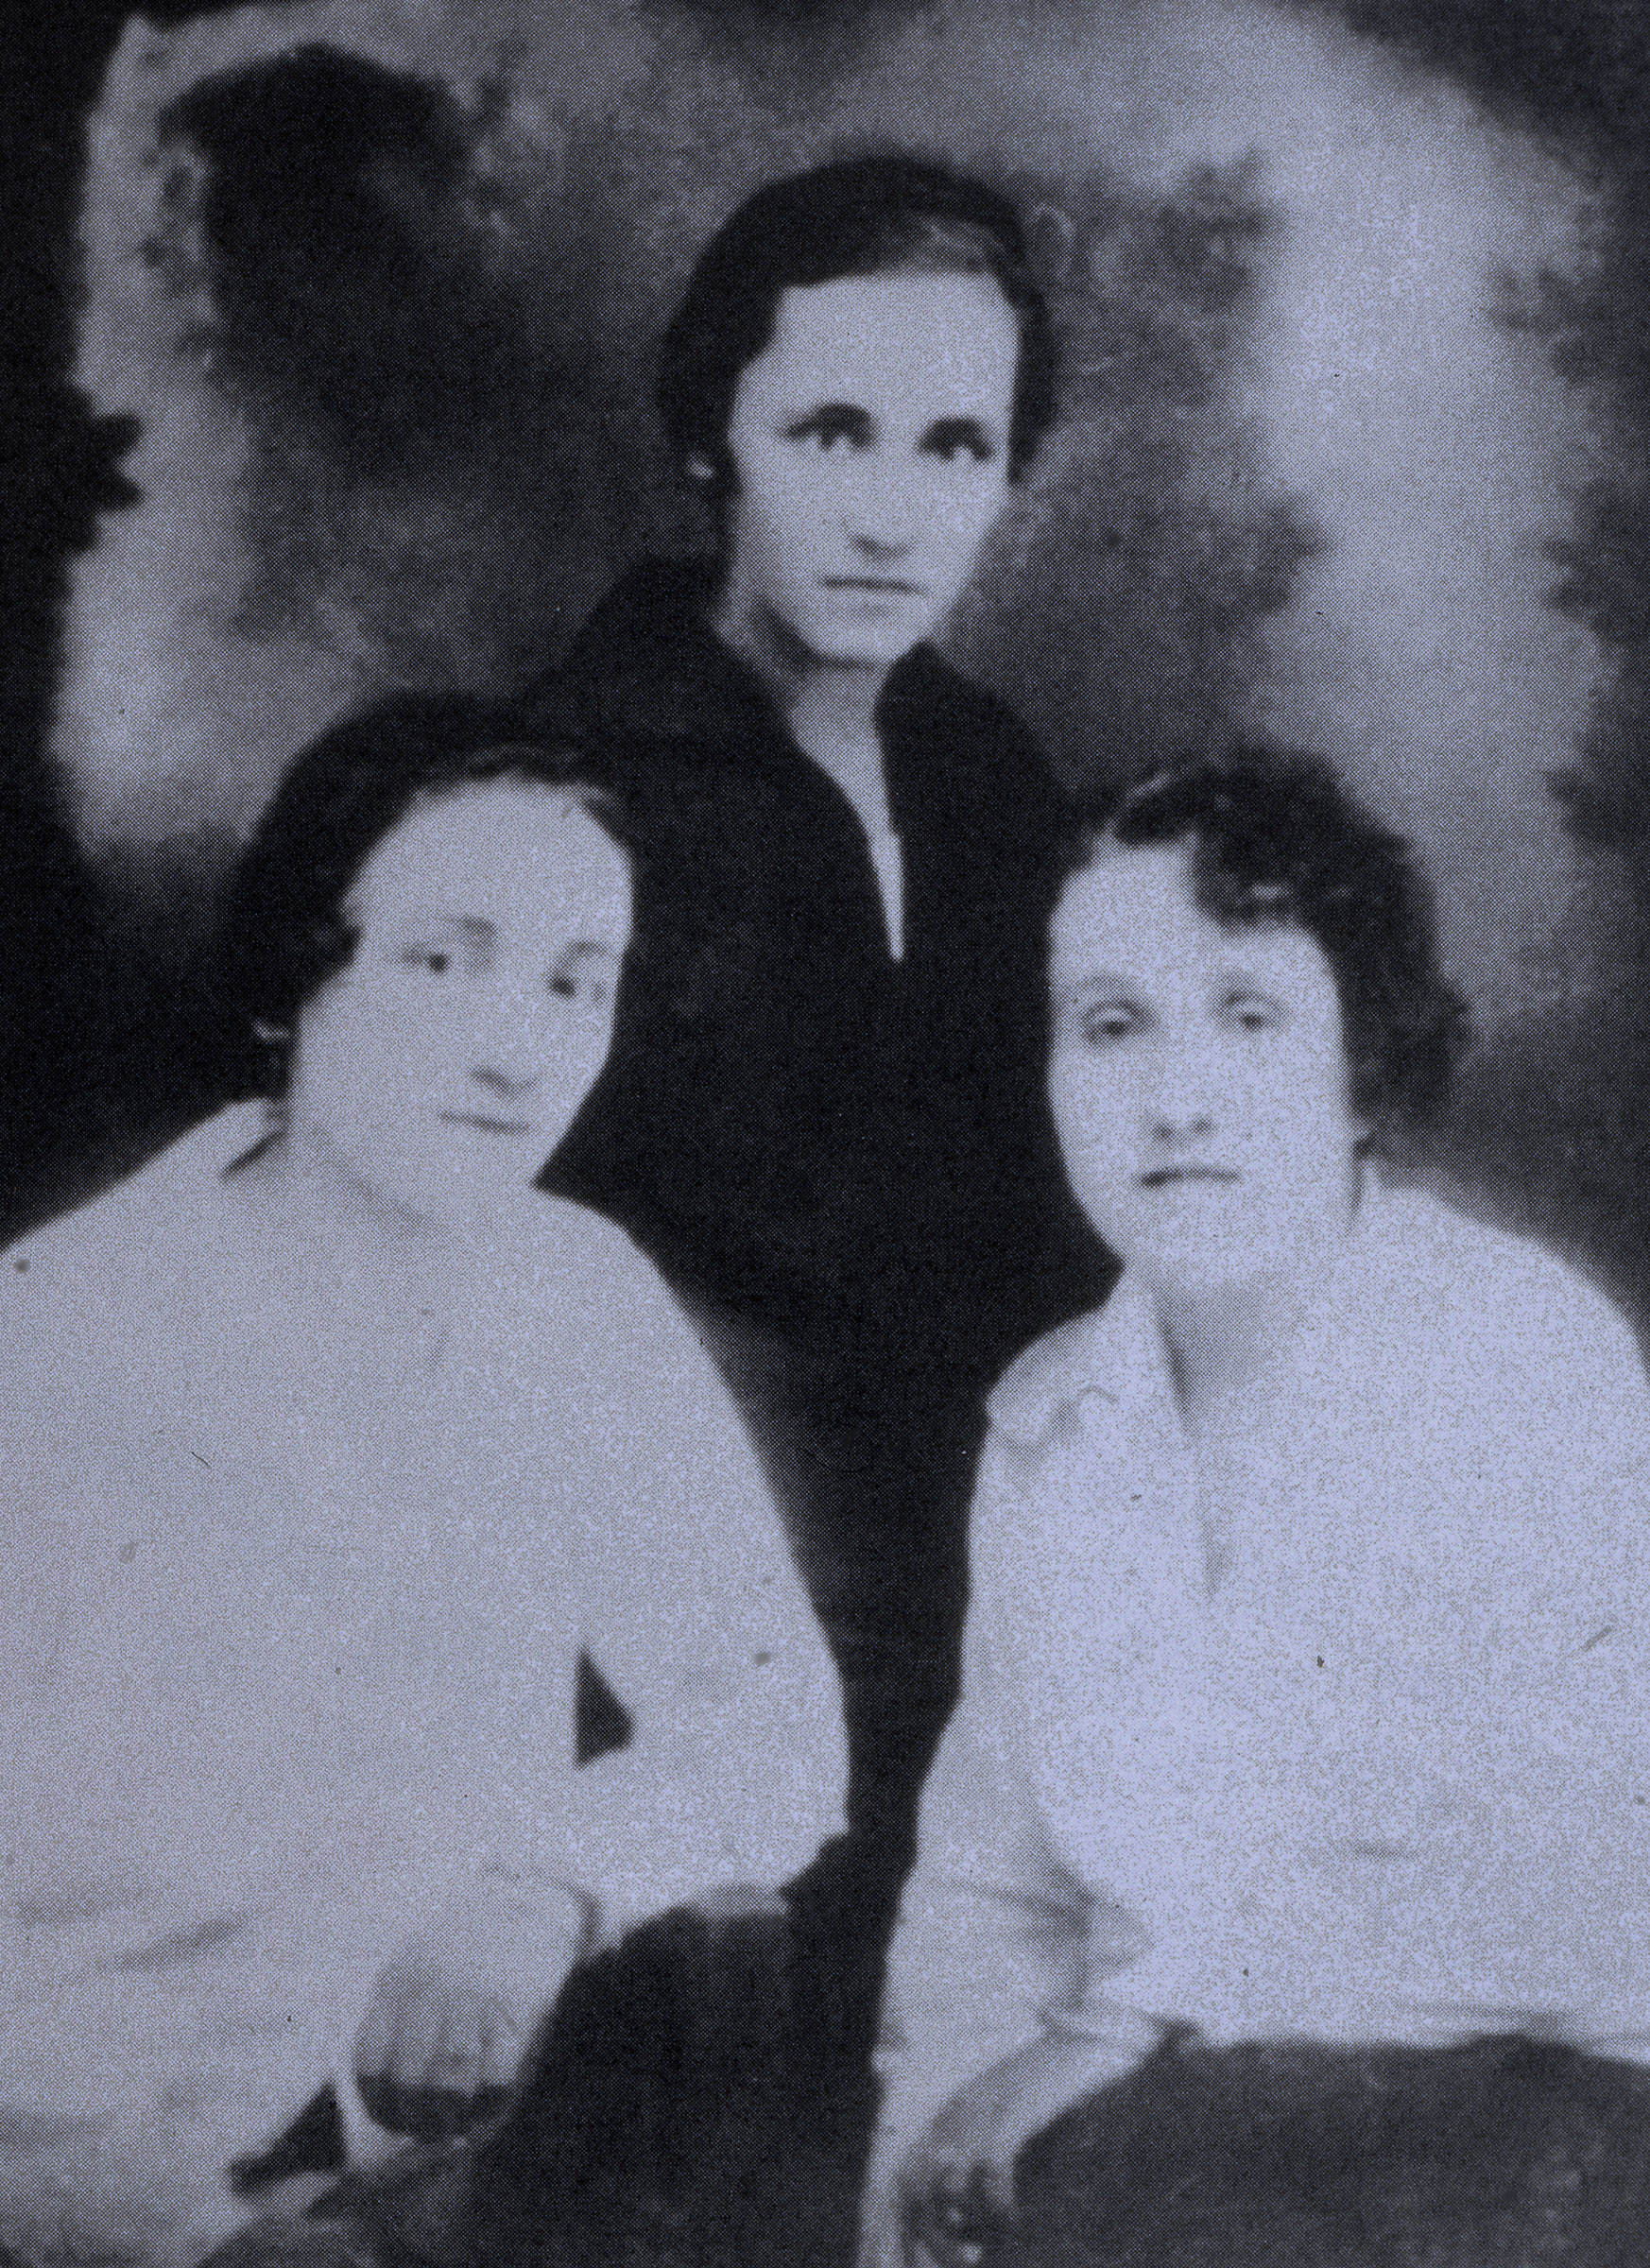 The young Albanian born Anjez�� Gonxhe Bojaxhiu, future Mother Teresa of Calcutta (C), with her sister Aga (L) and a friend, a few days before her departure to the Loreto Abbey in Rathfarnham, Ireland, to learn English, the language the Sisters of Loreto used to teach school children in India. (Photo by Vittoriano Rastelli/Corbis via Getty Images)